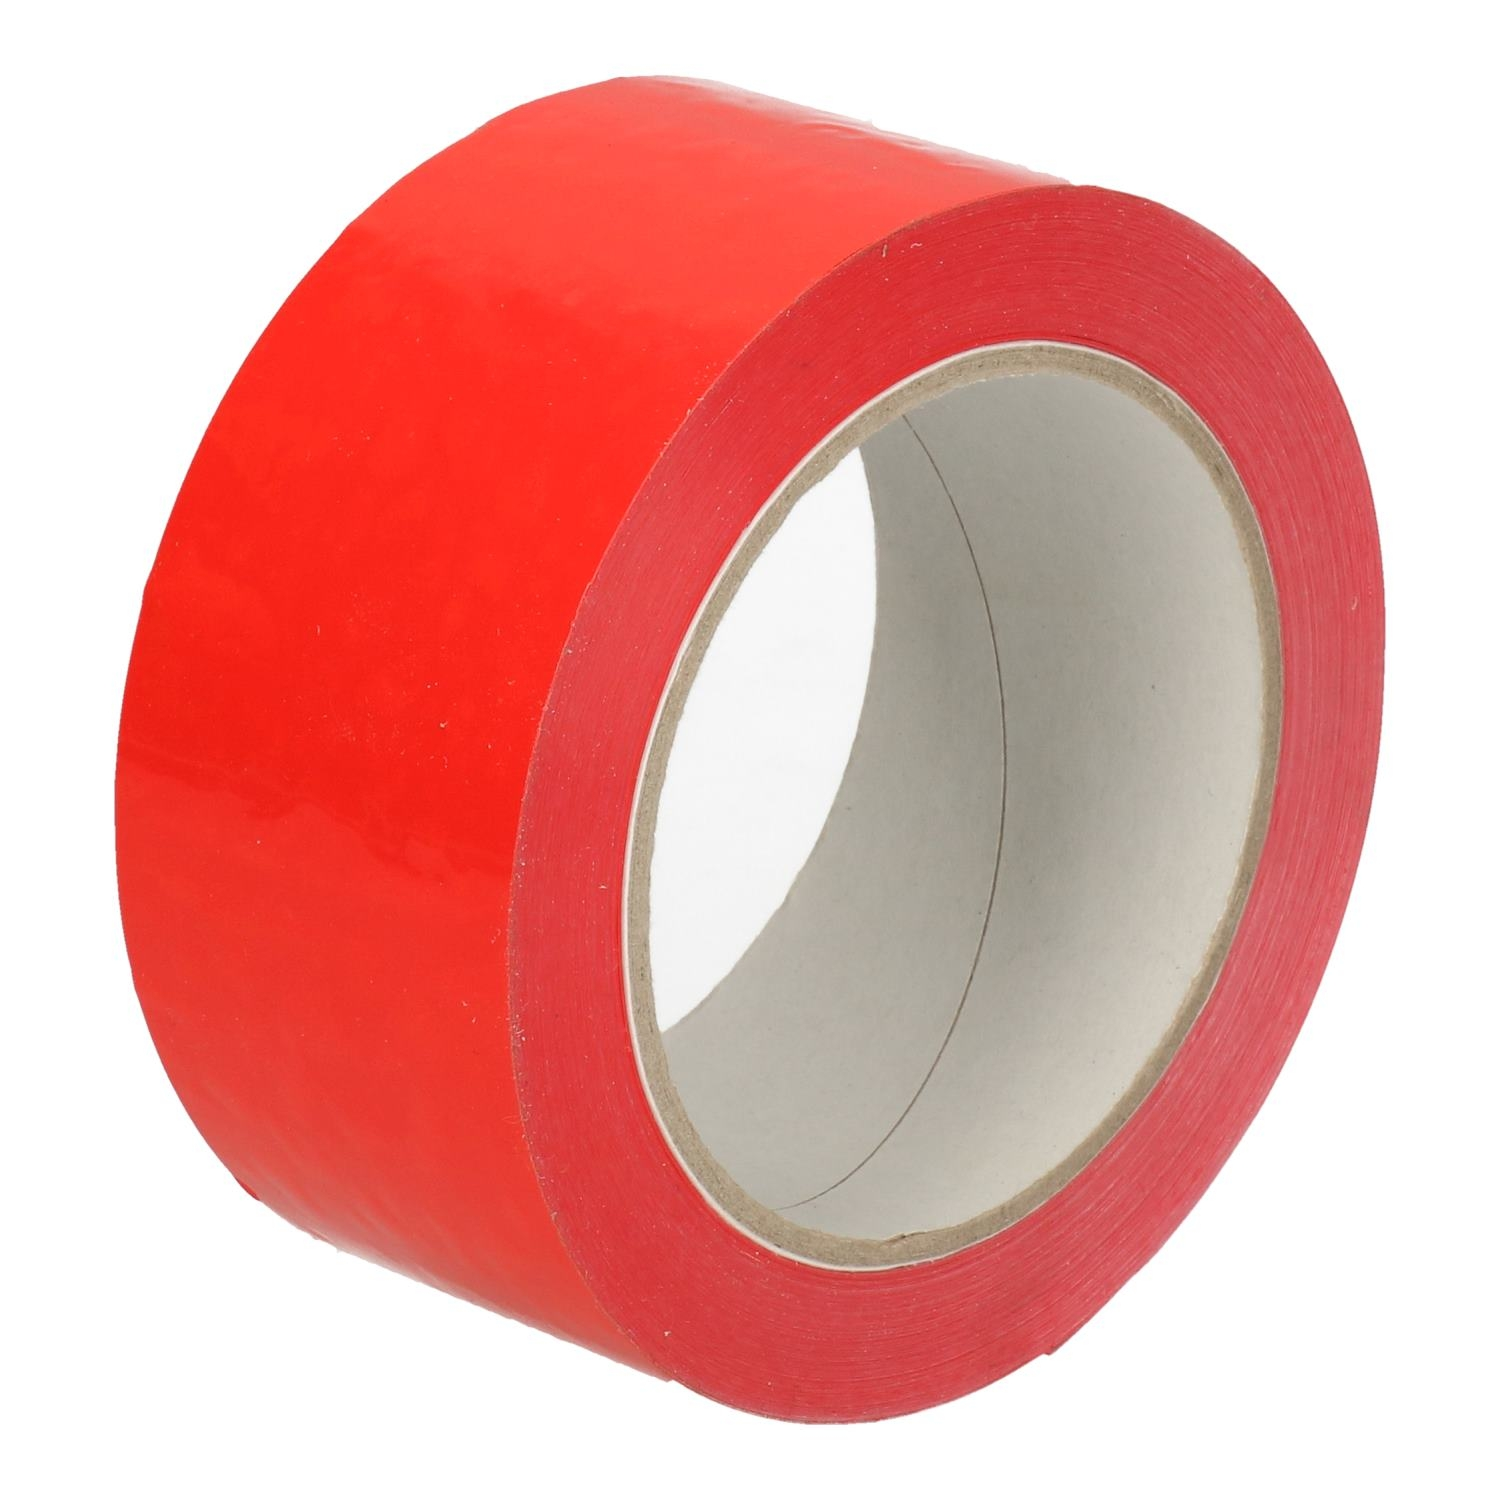 Tape PVC rood 48 mm x 66 mtr